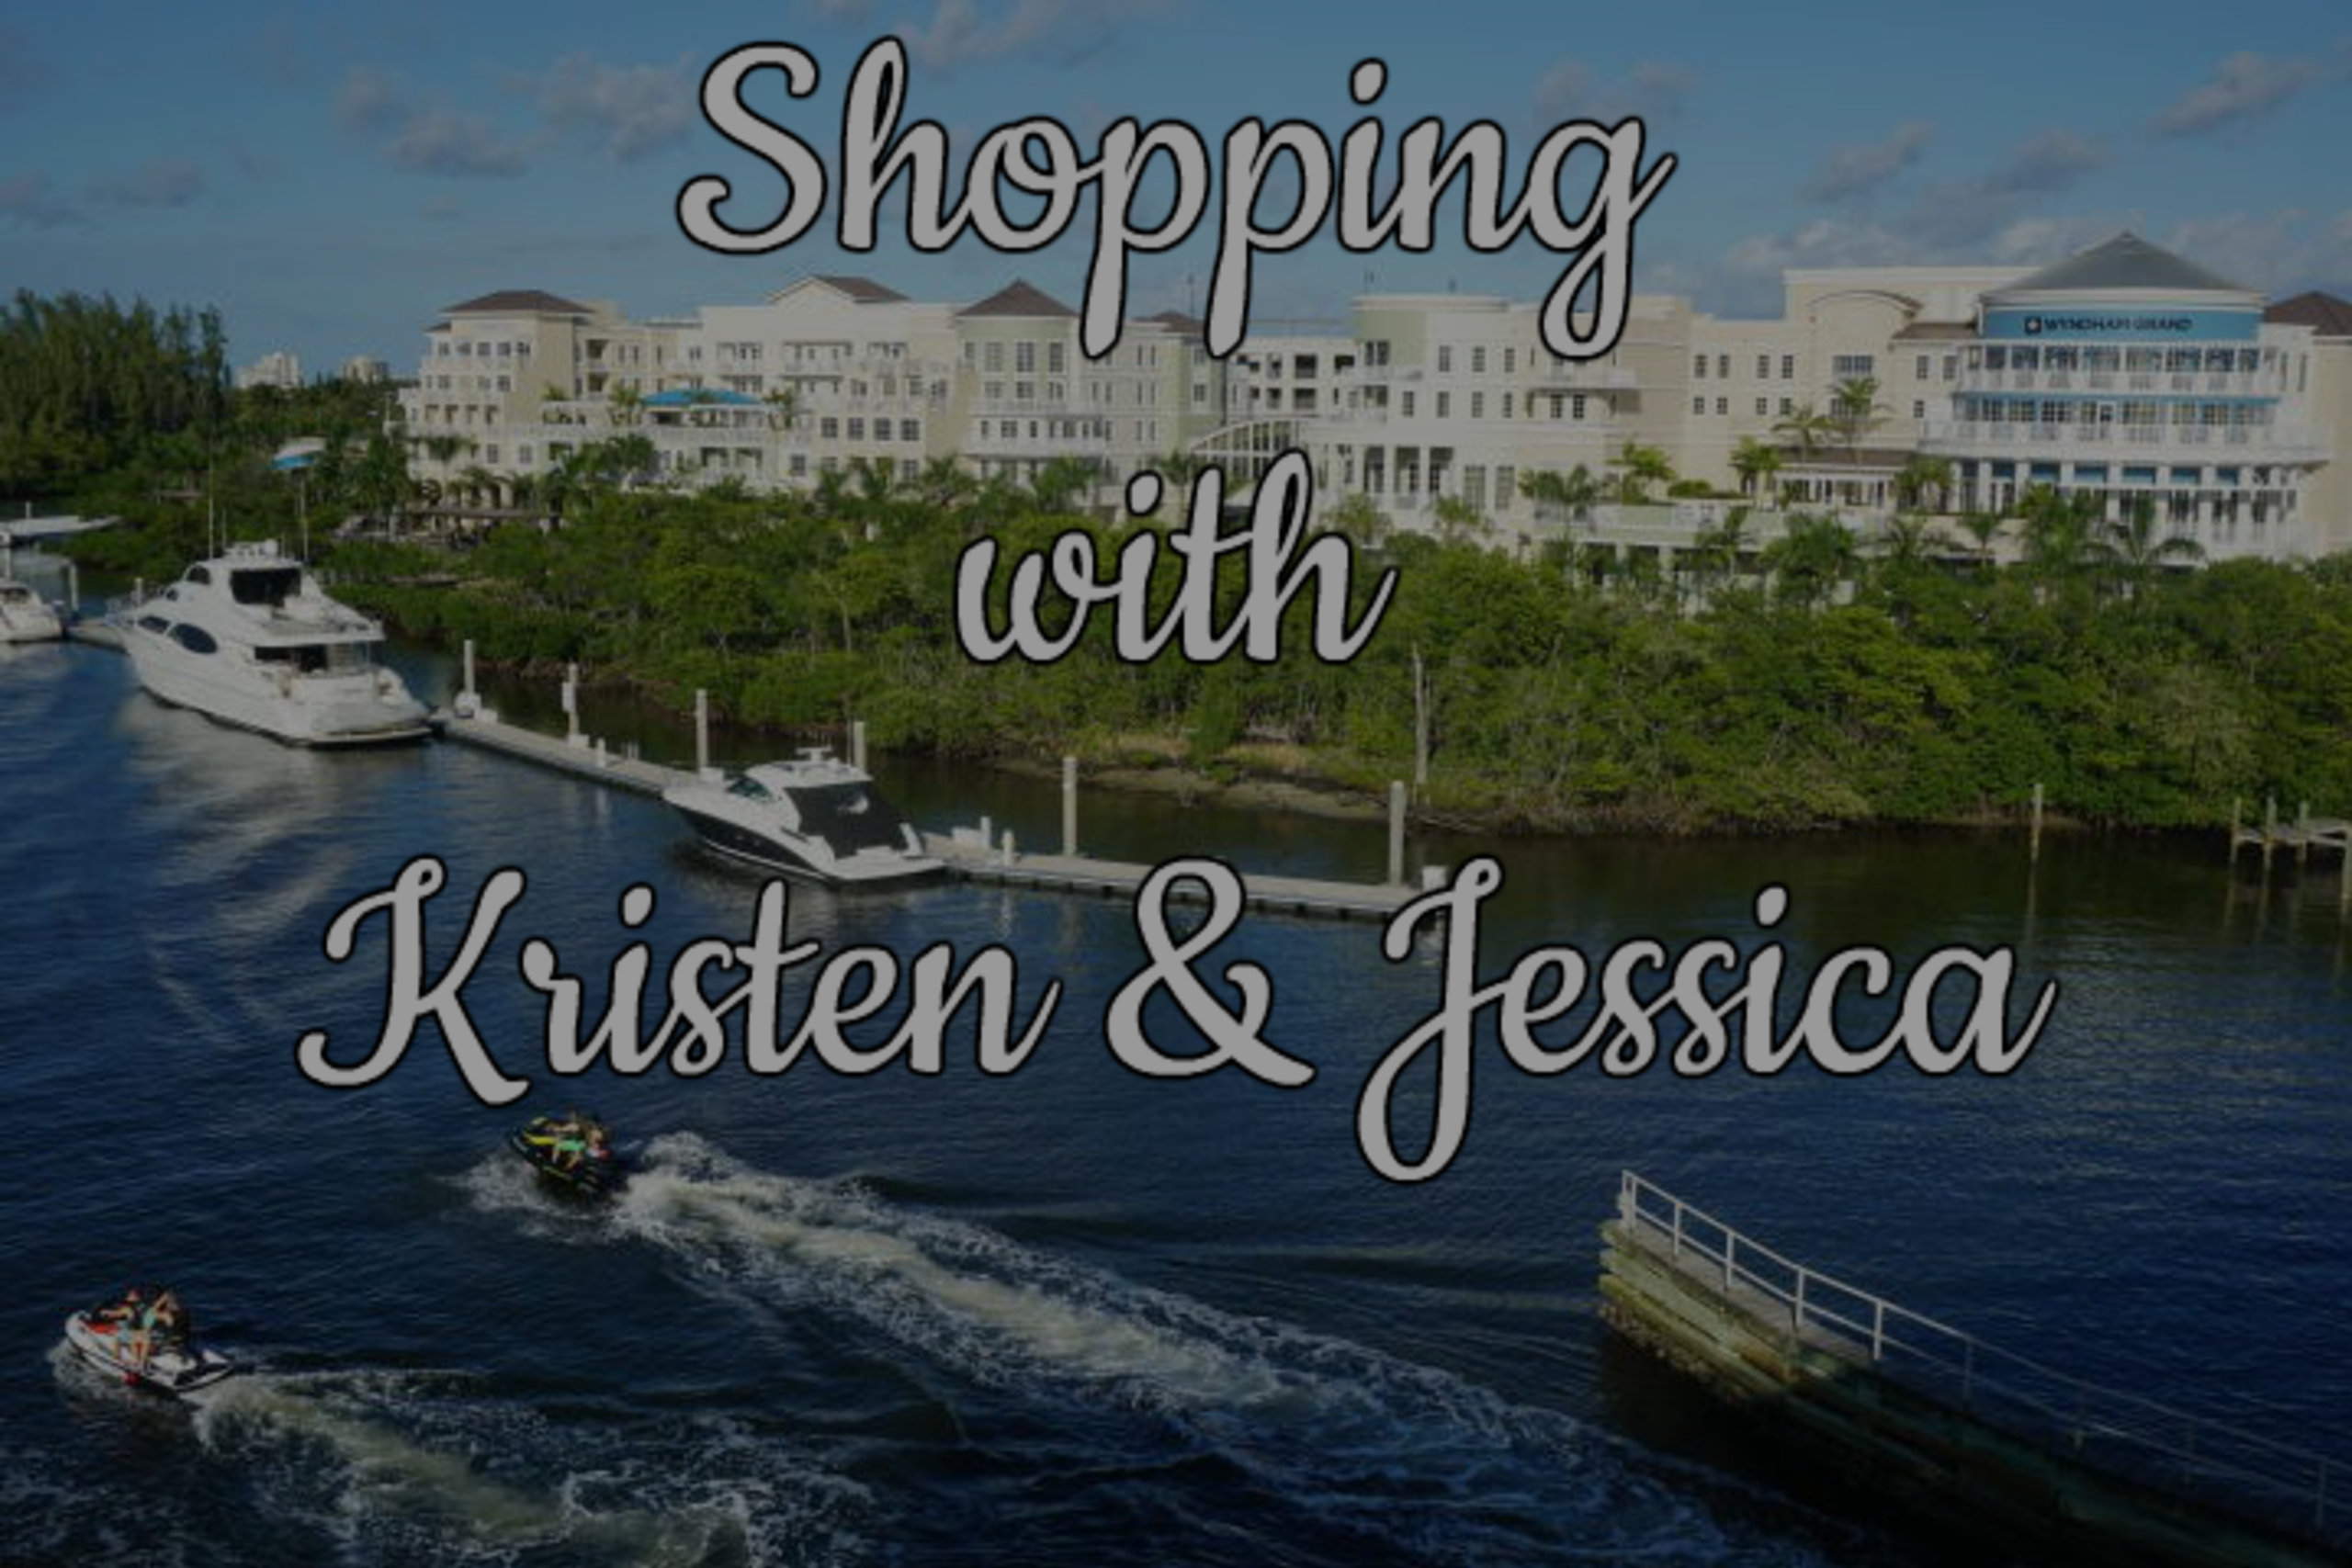 Kristen & Jessica's Palm Beaches Destination Guide to Shopping